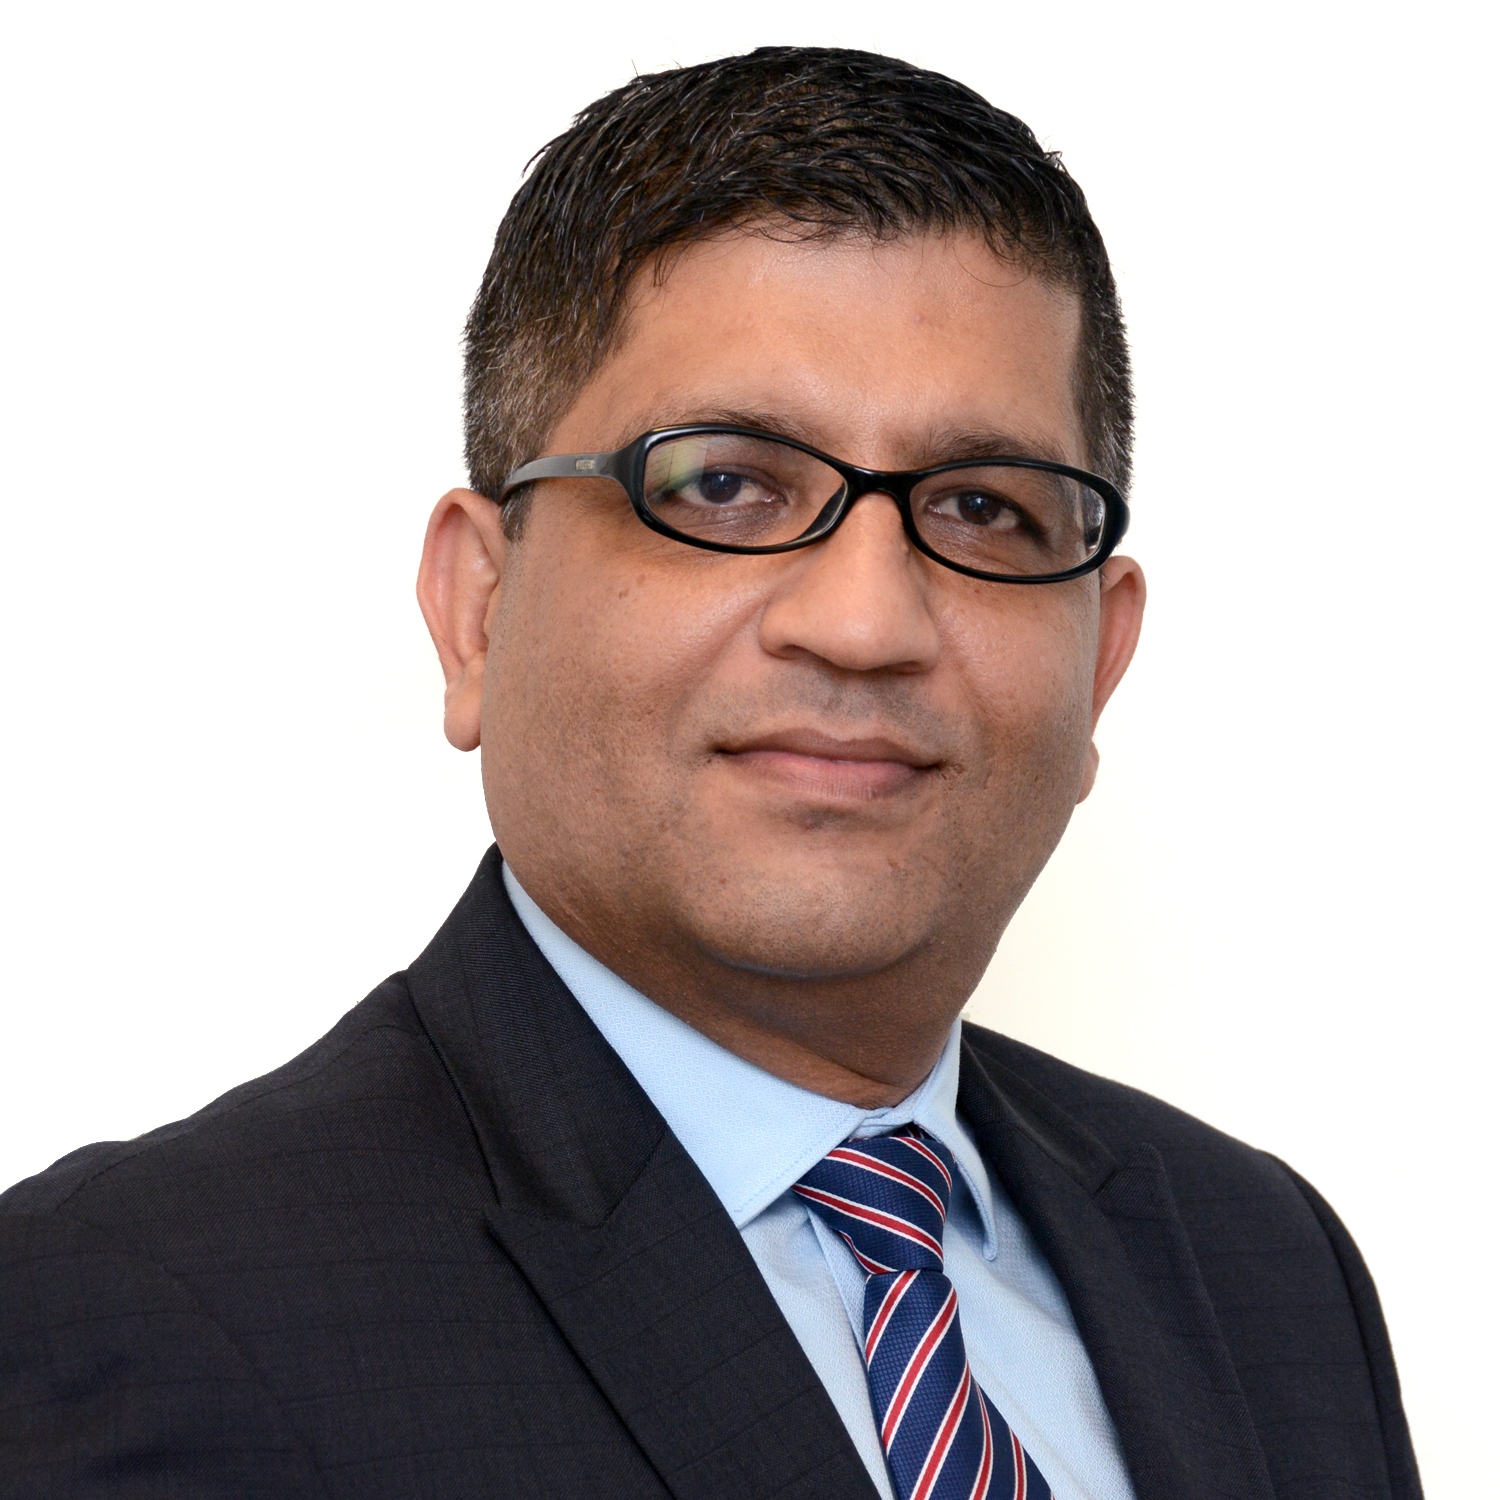 Samrat Das, Chief Information Officer at PNB Metlife India Insurance